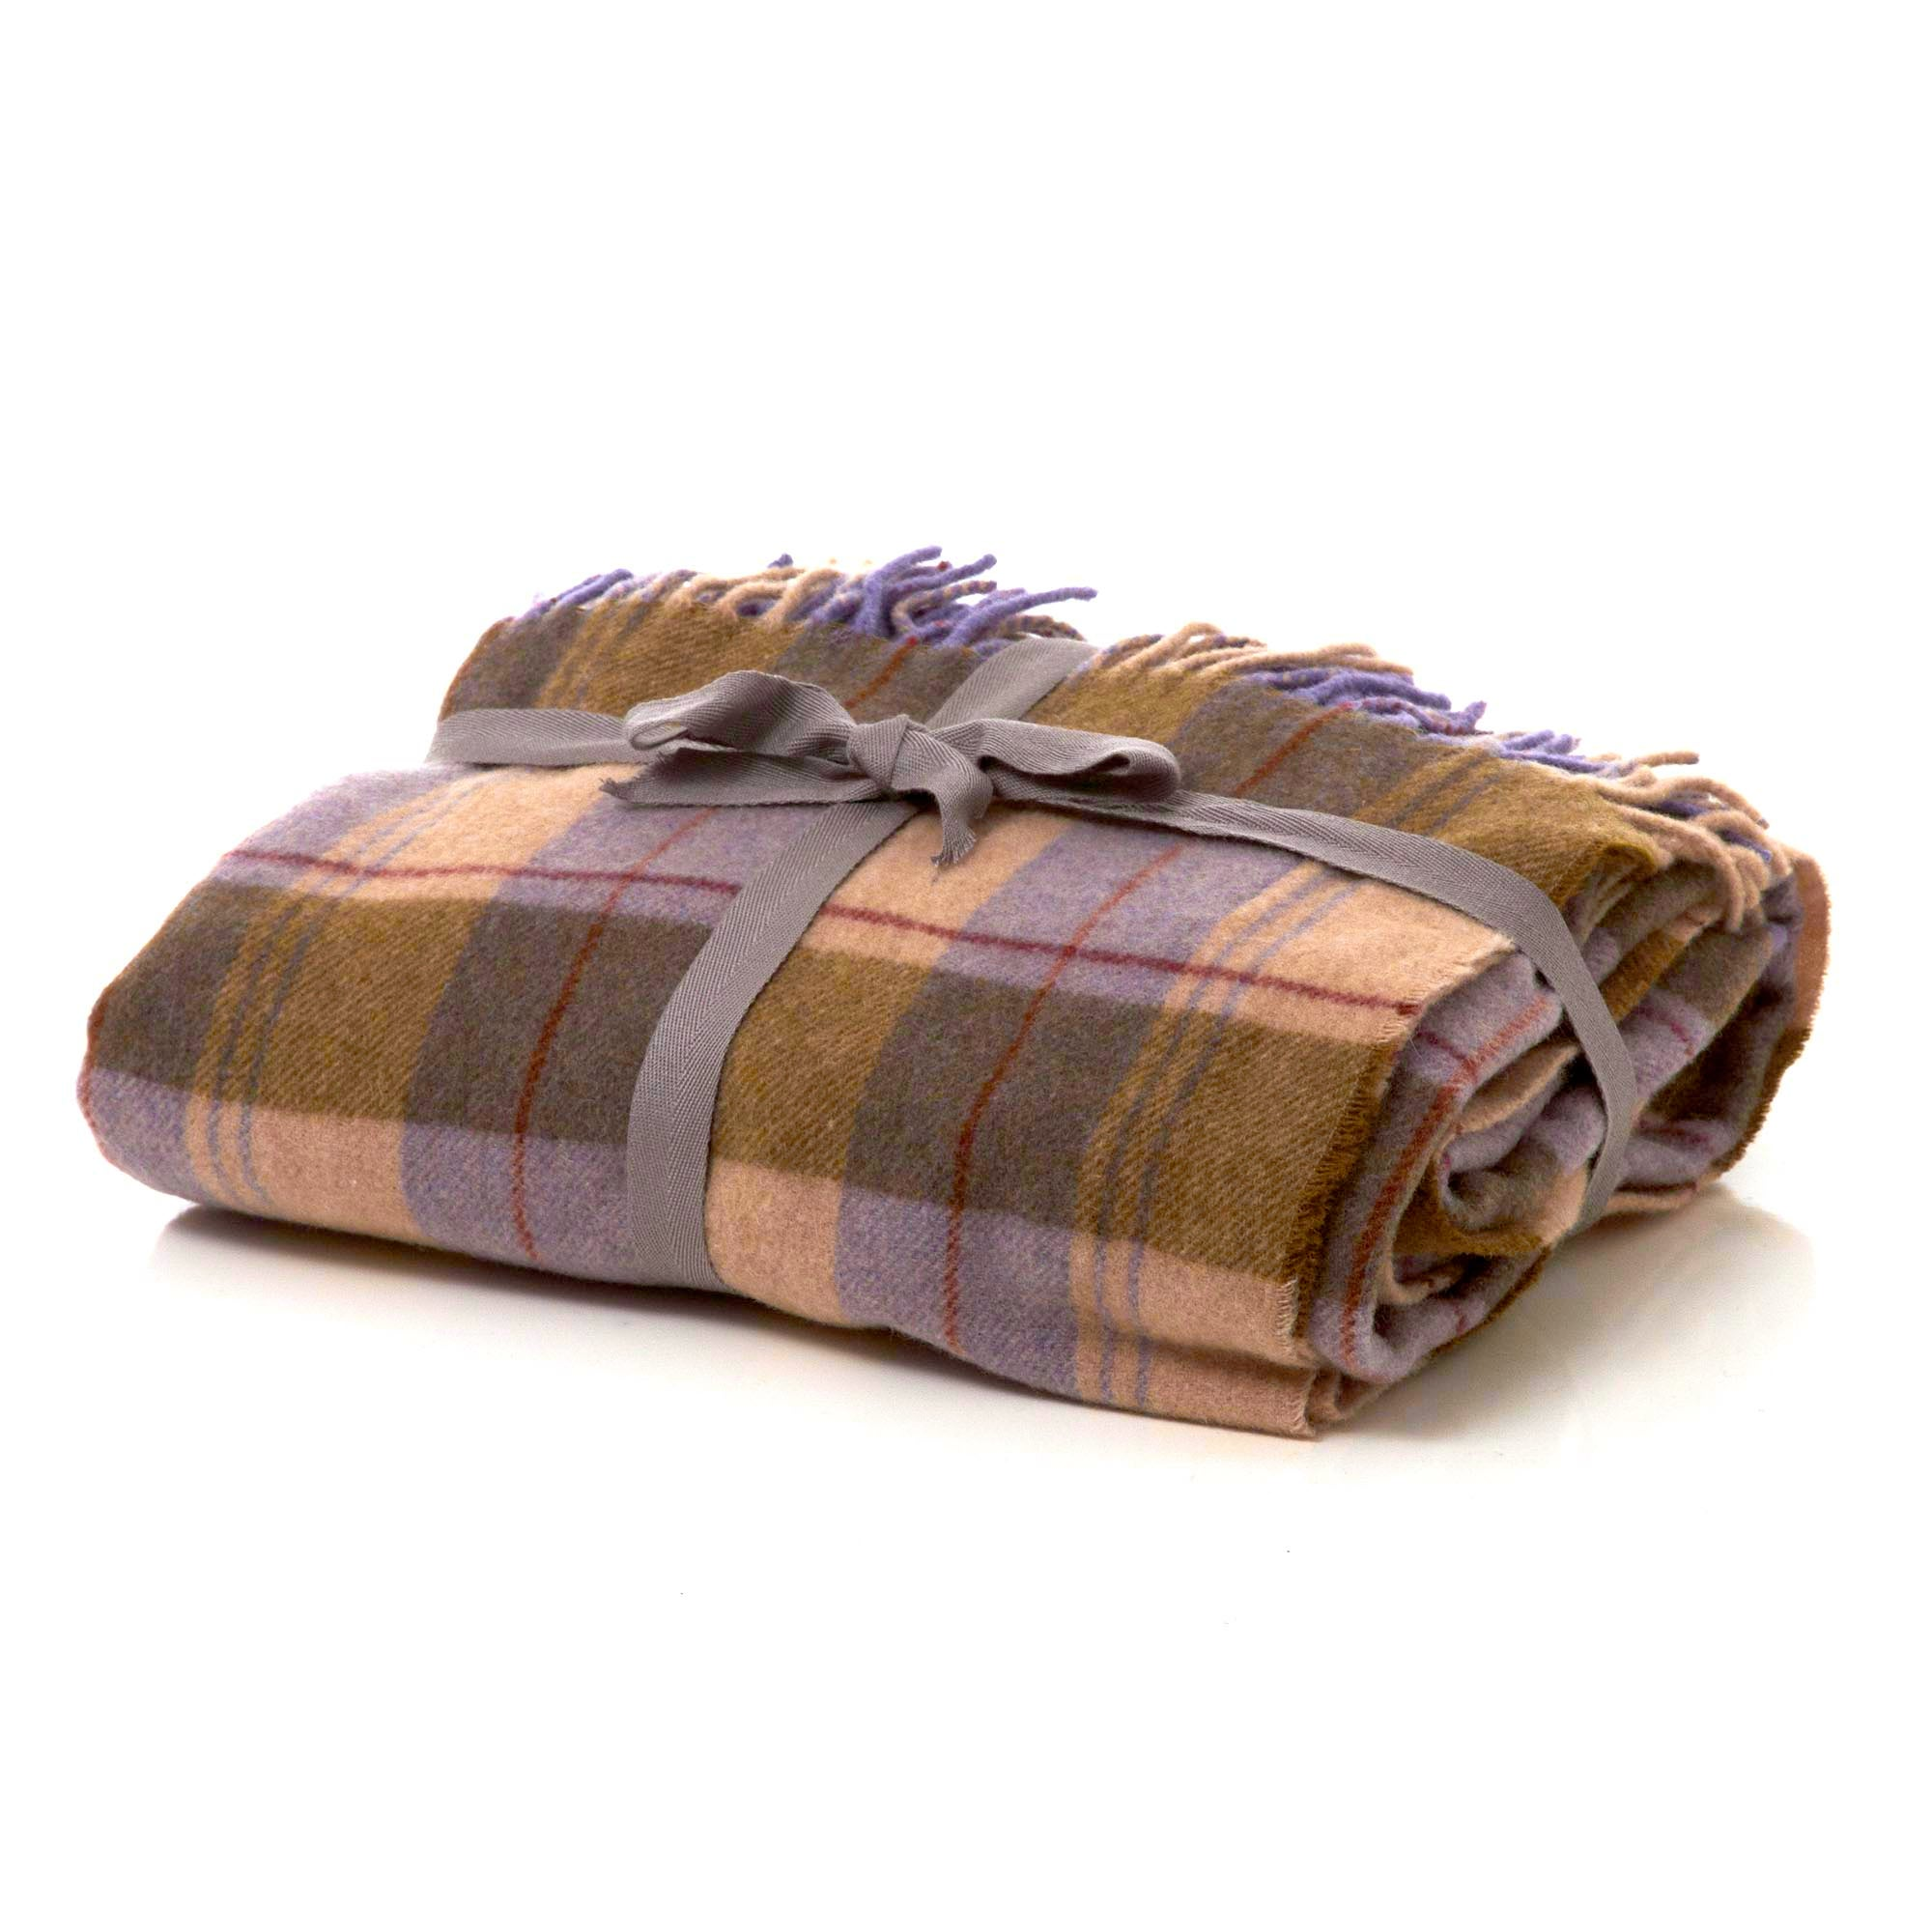 lilac throw shop for cheap home textiles and save online. Black Bedroom Furniture Sets. Home Design Ideas